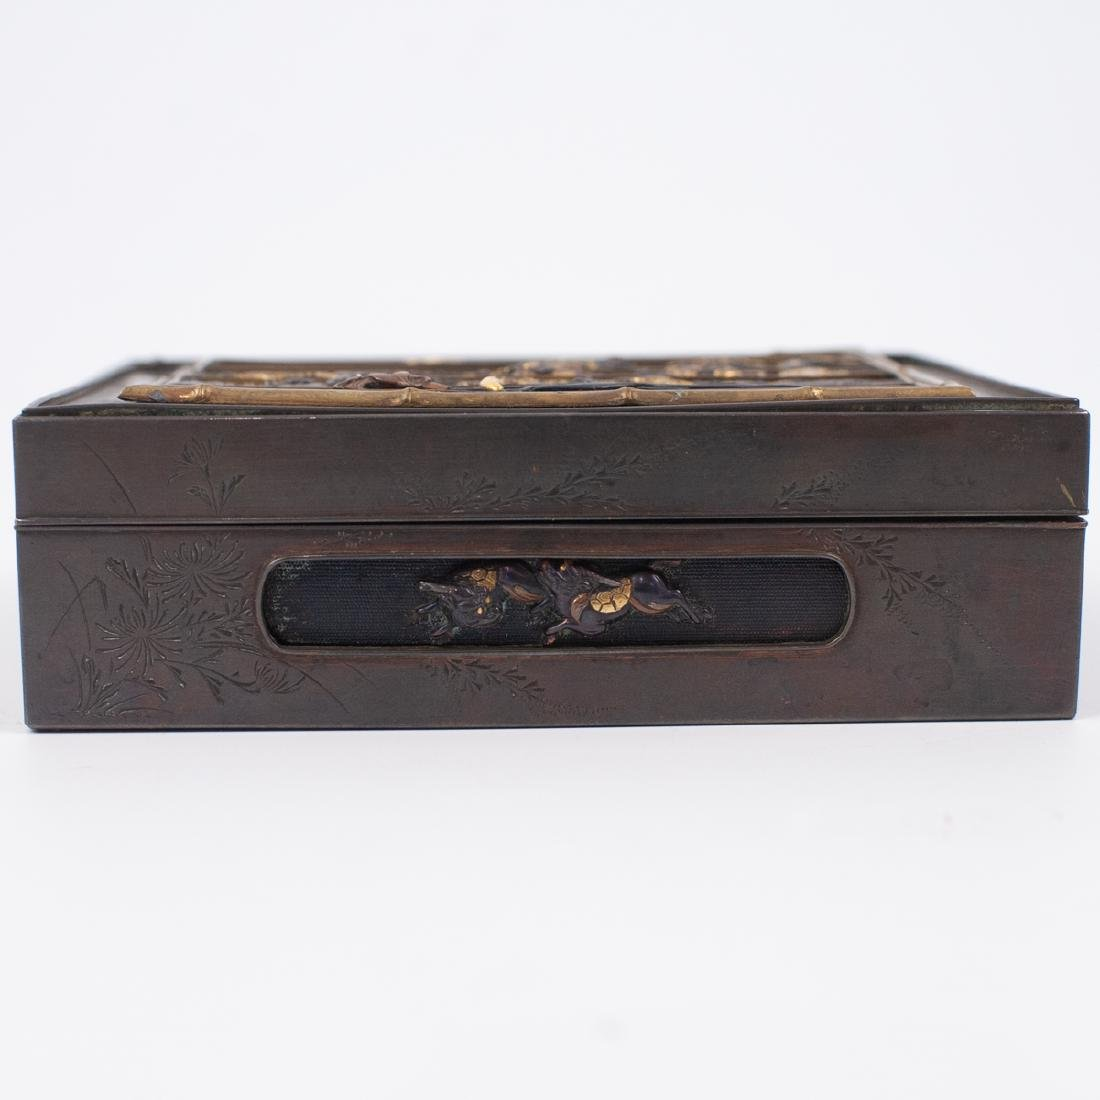 Japanese Meji Period Inlaid Bronze Box - 2